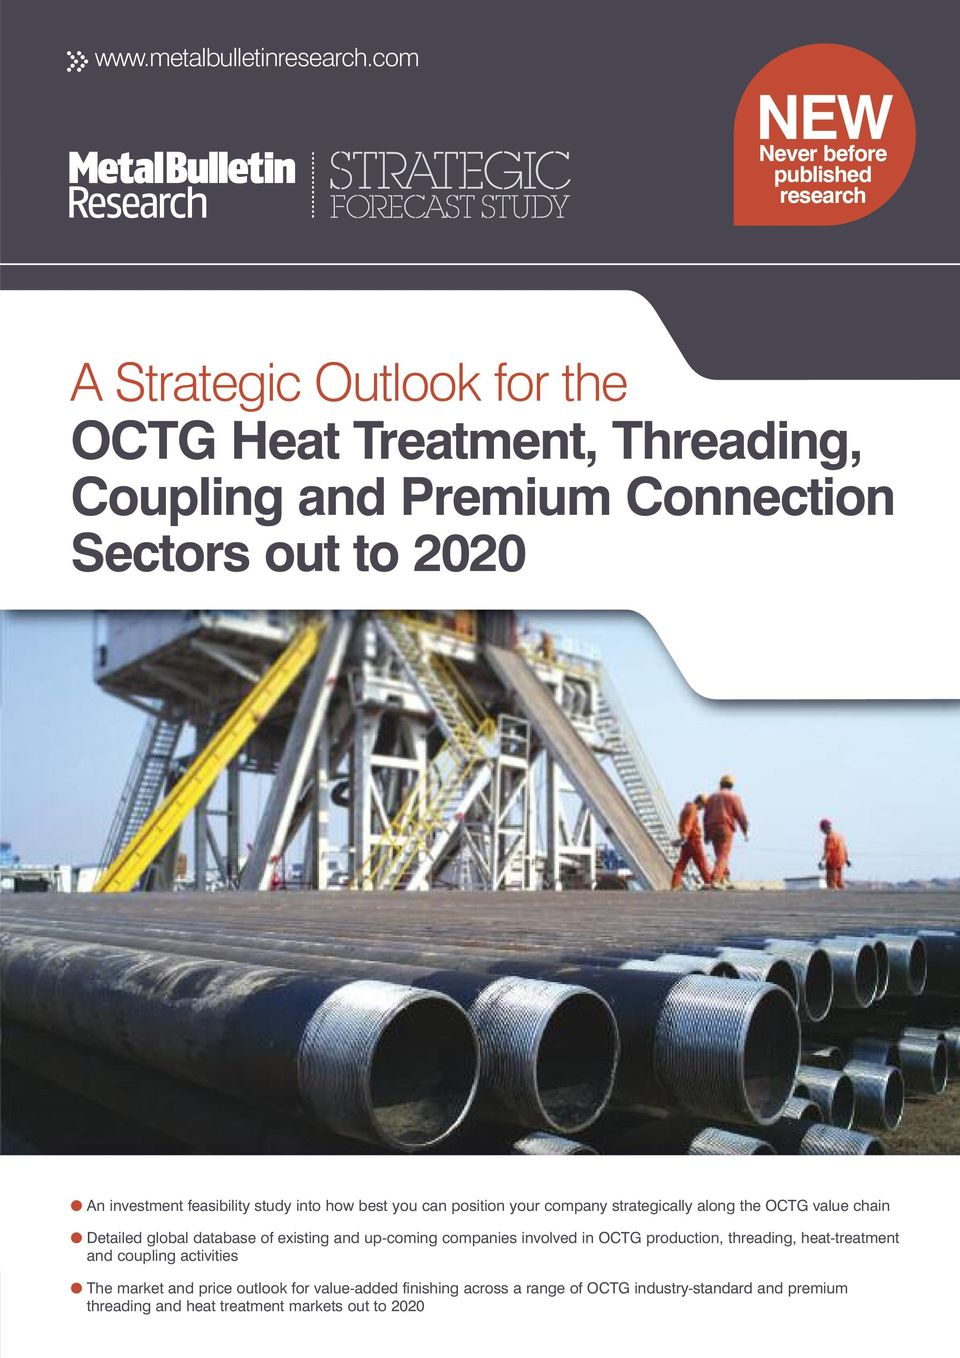 NEW  A Strategic Outlook for the OCTG Heat Treatment